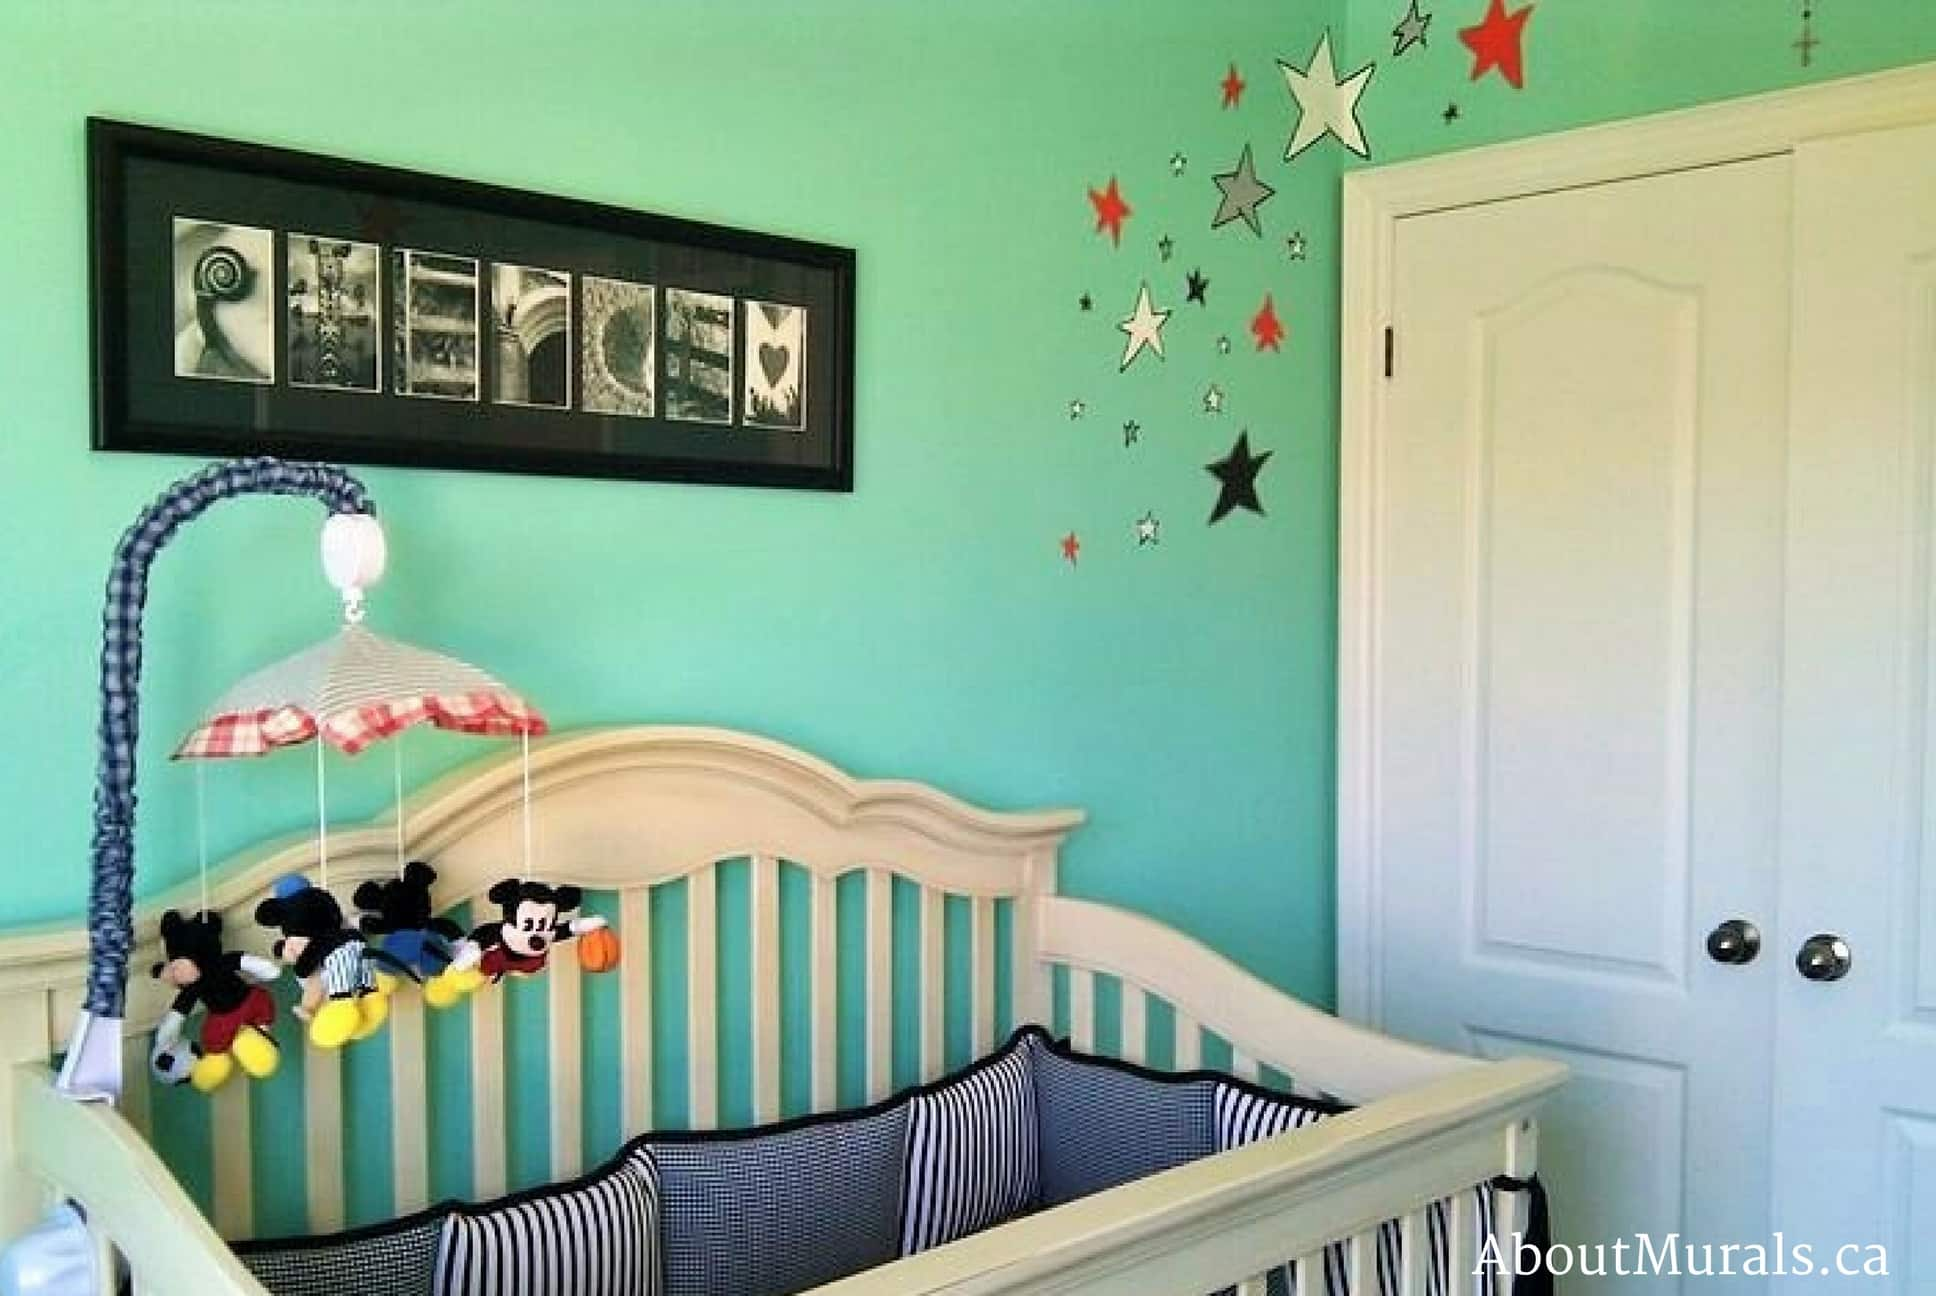 A kids wall mural featuring black, white, orange and silver stars scattered through a baby nursery